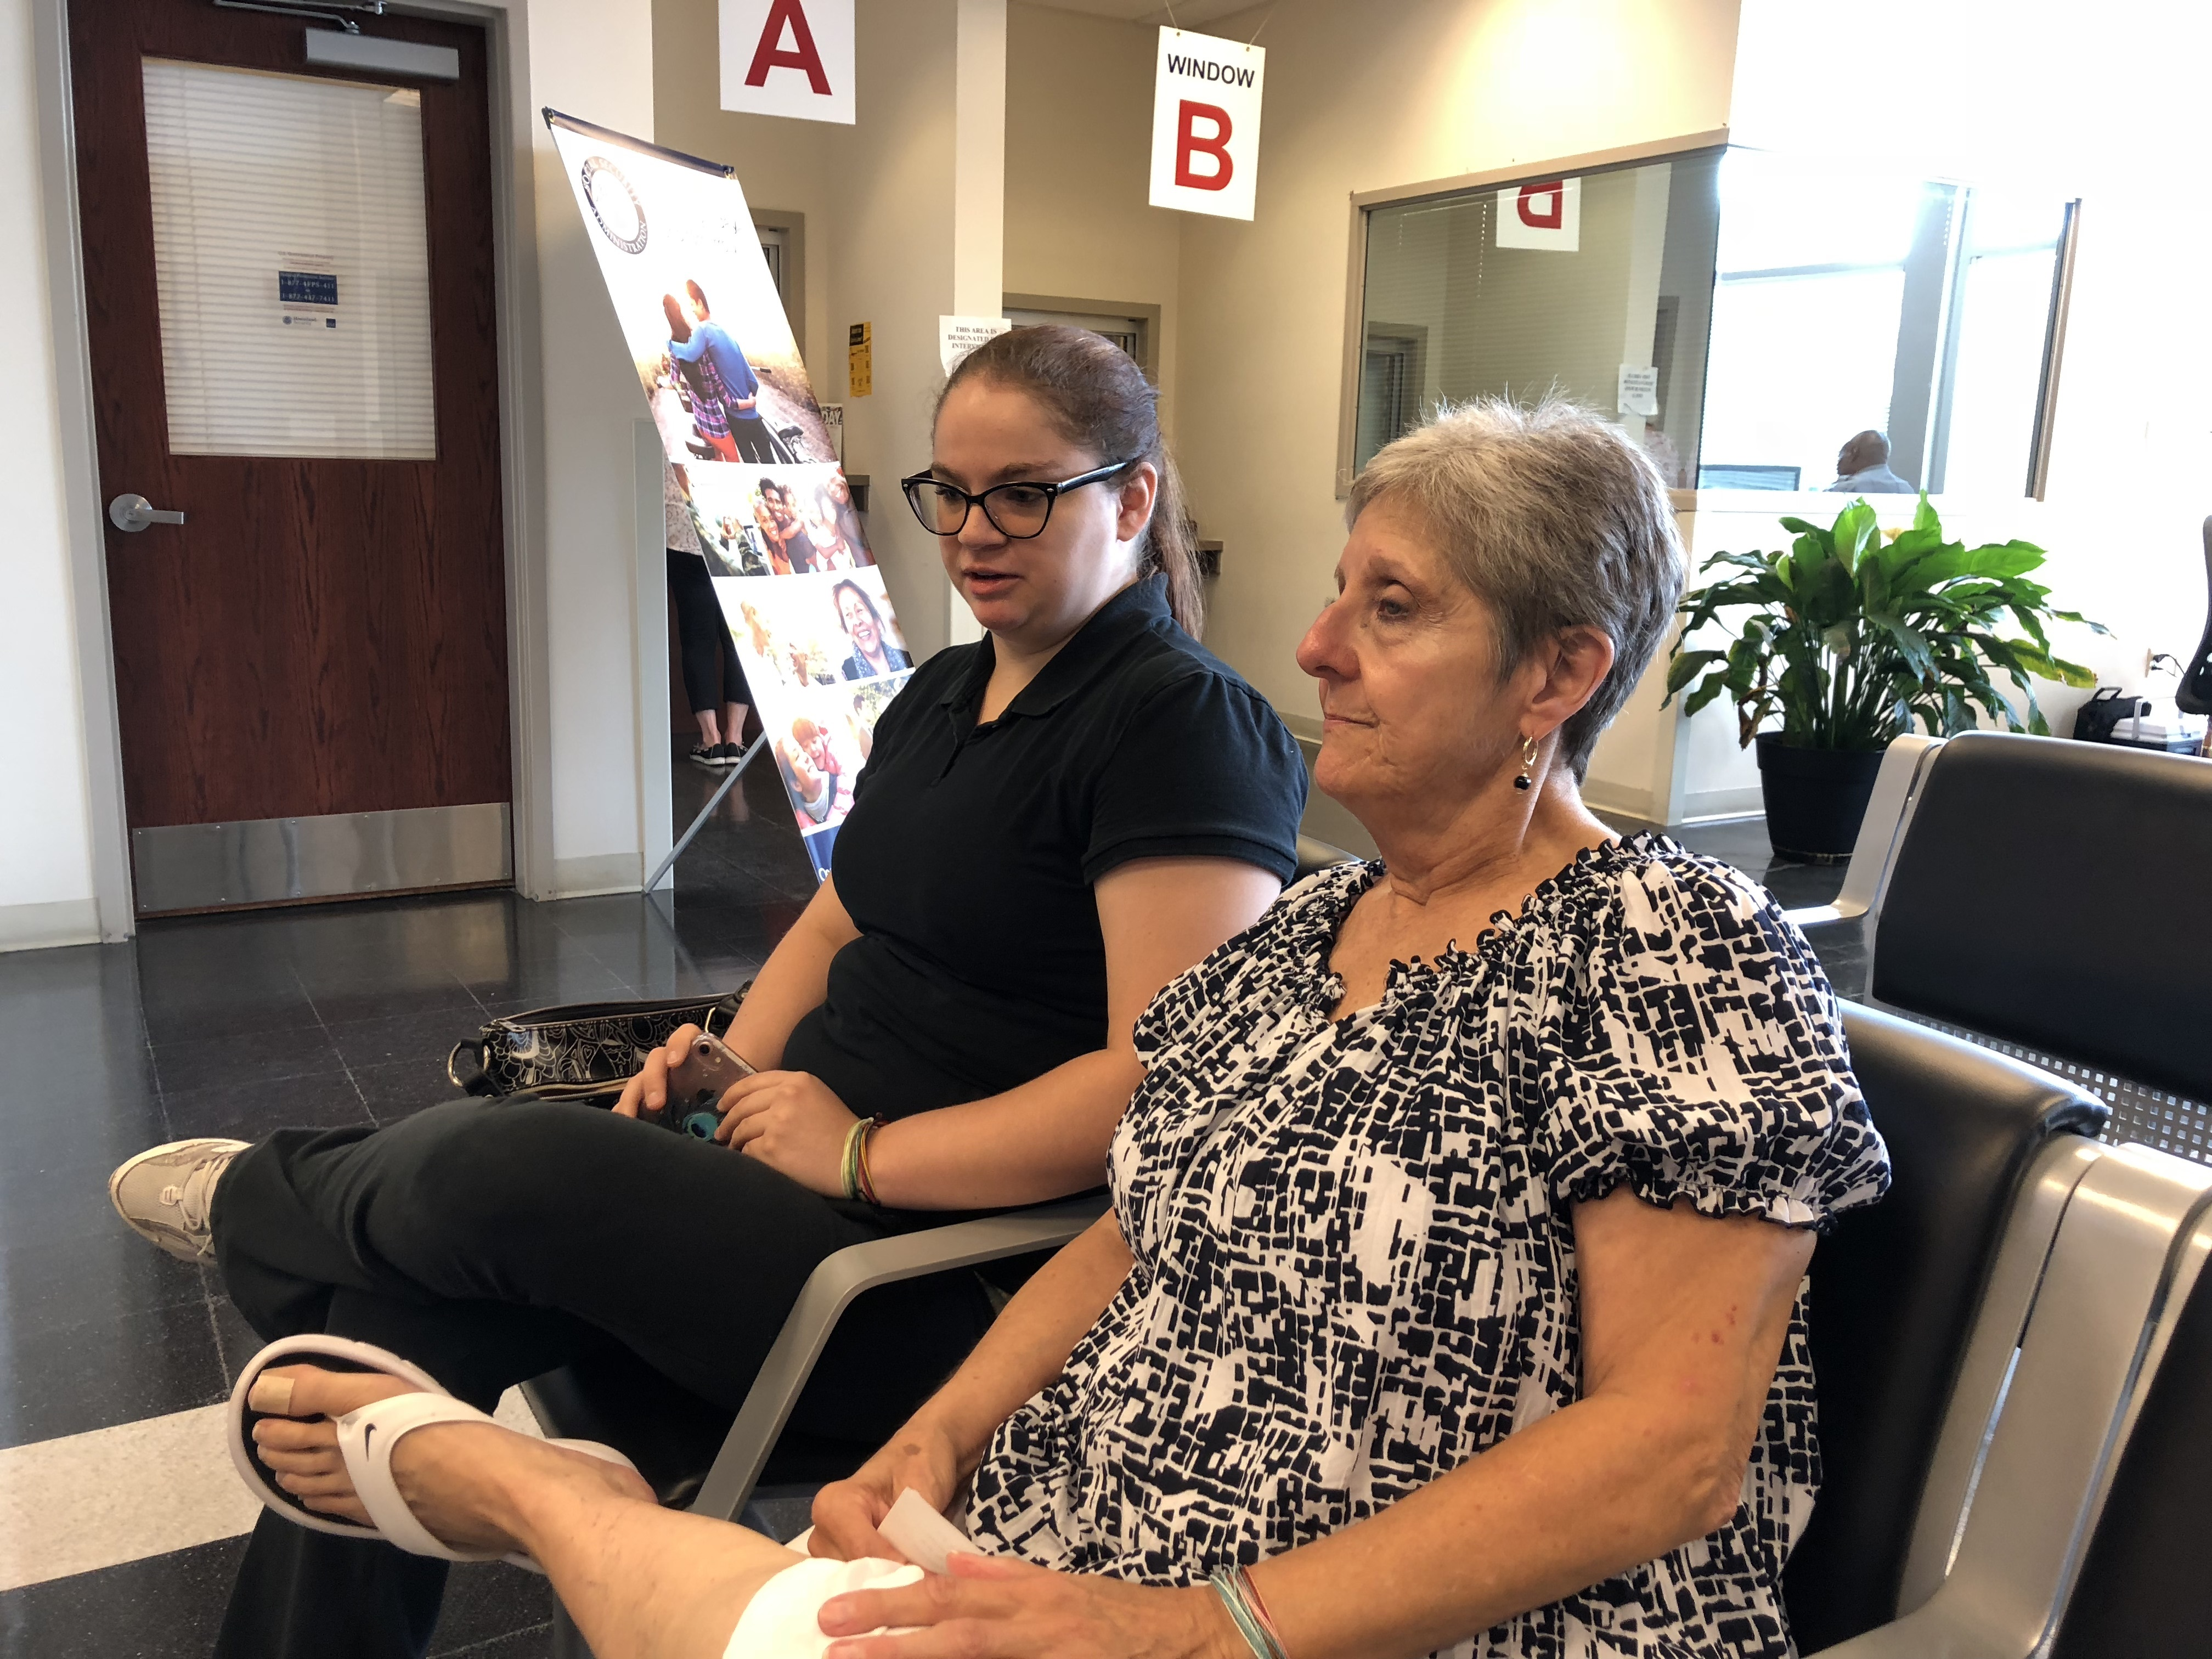 Susan Scott, with her granddaughter Taryn, waits her turn in the Social Security office in Limerick.